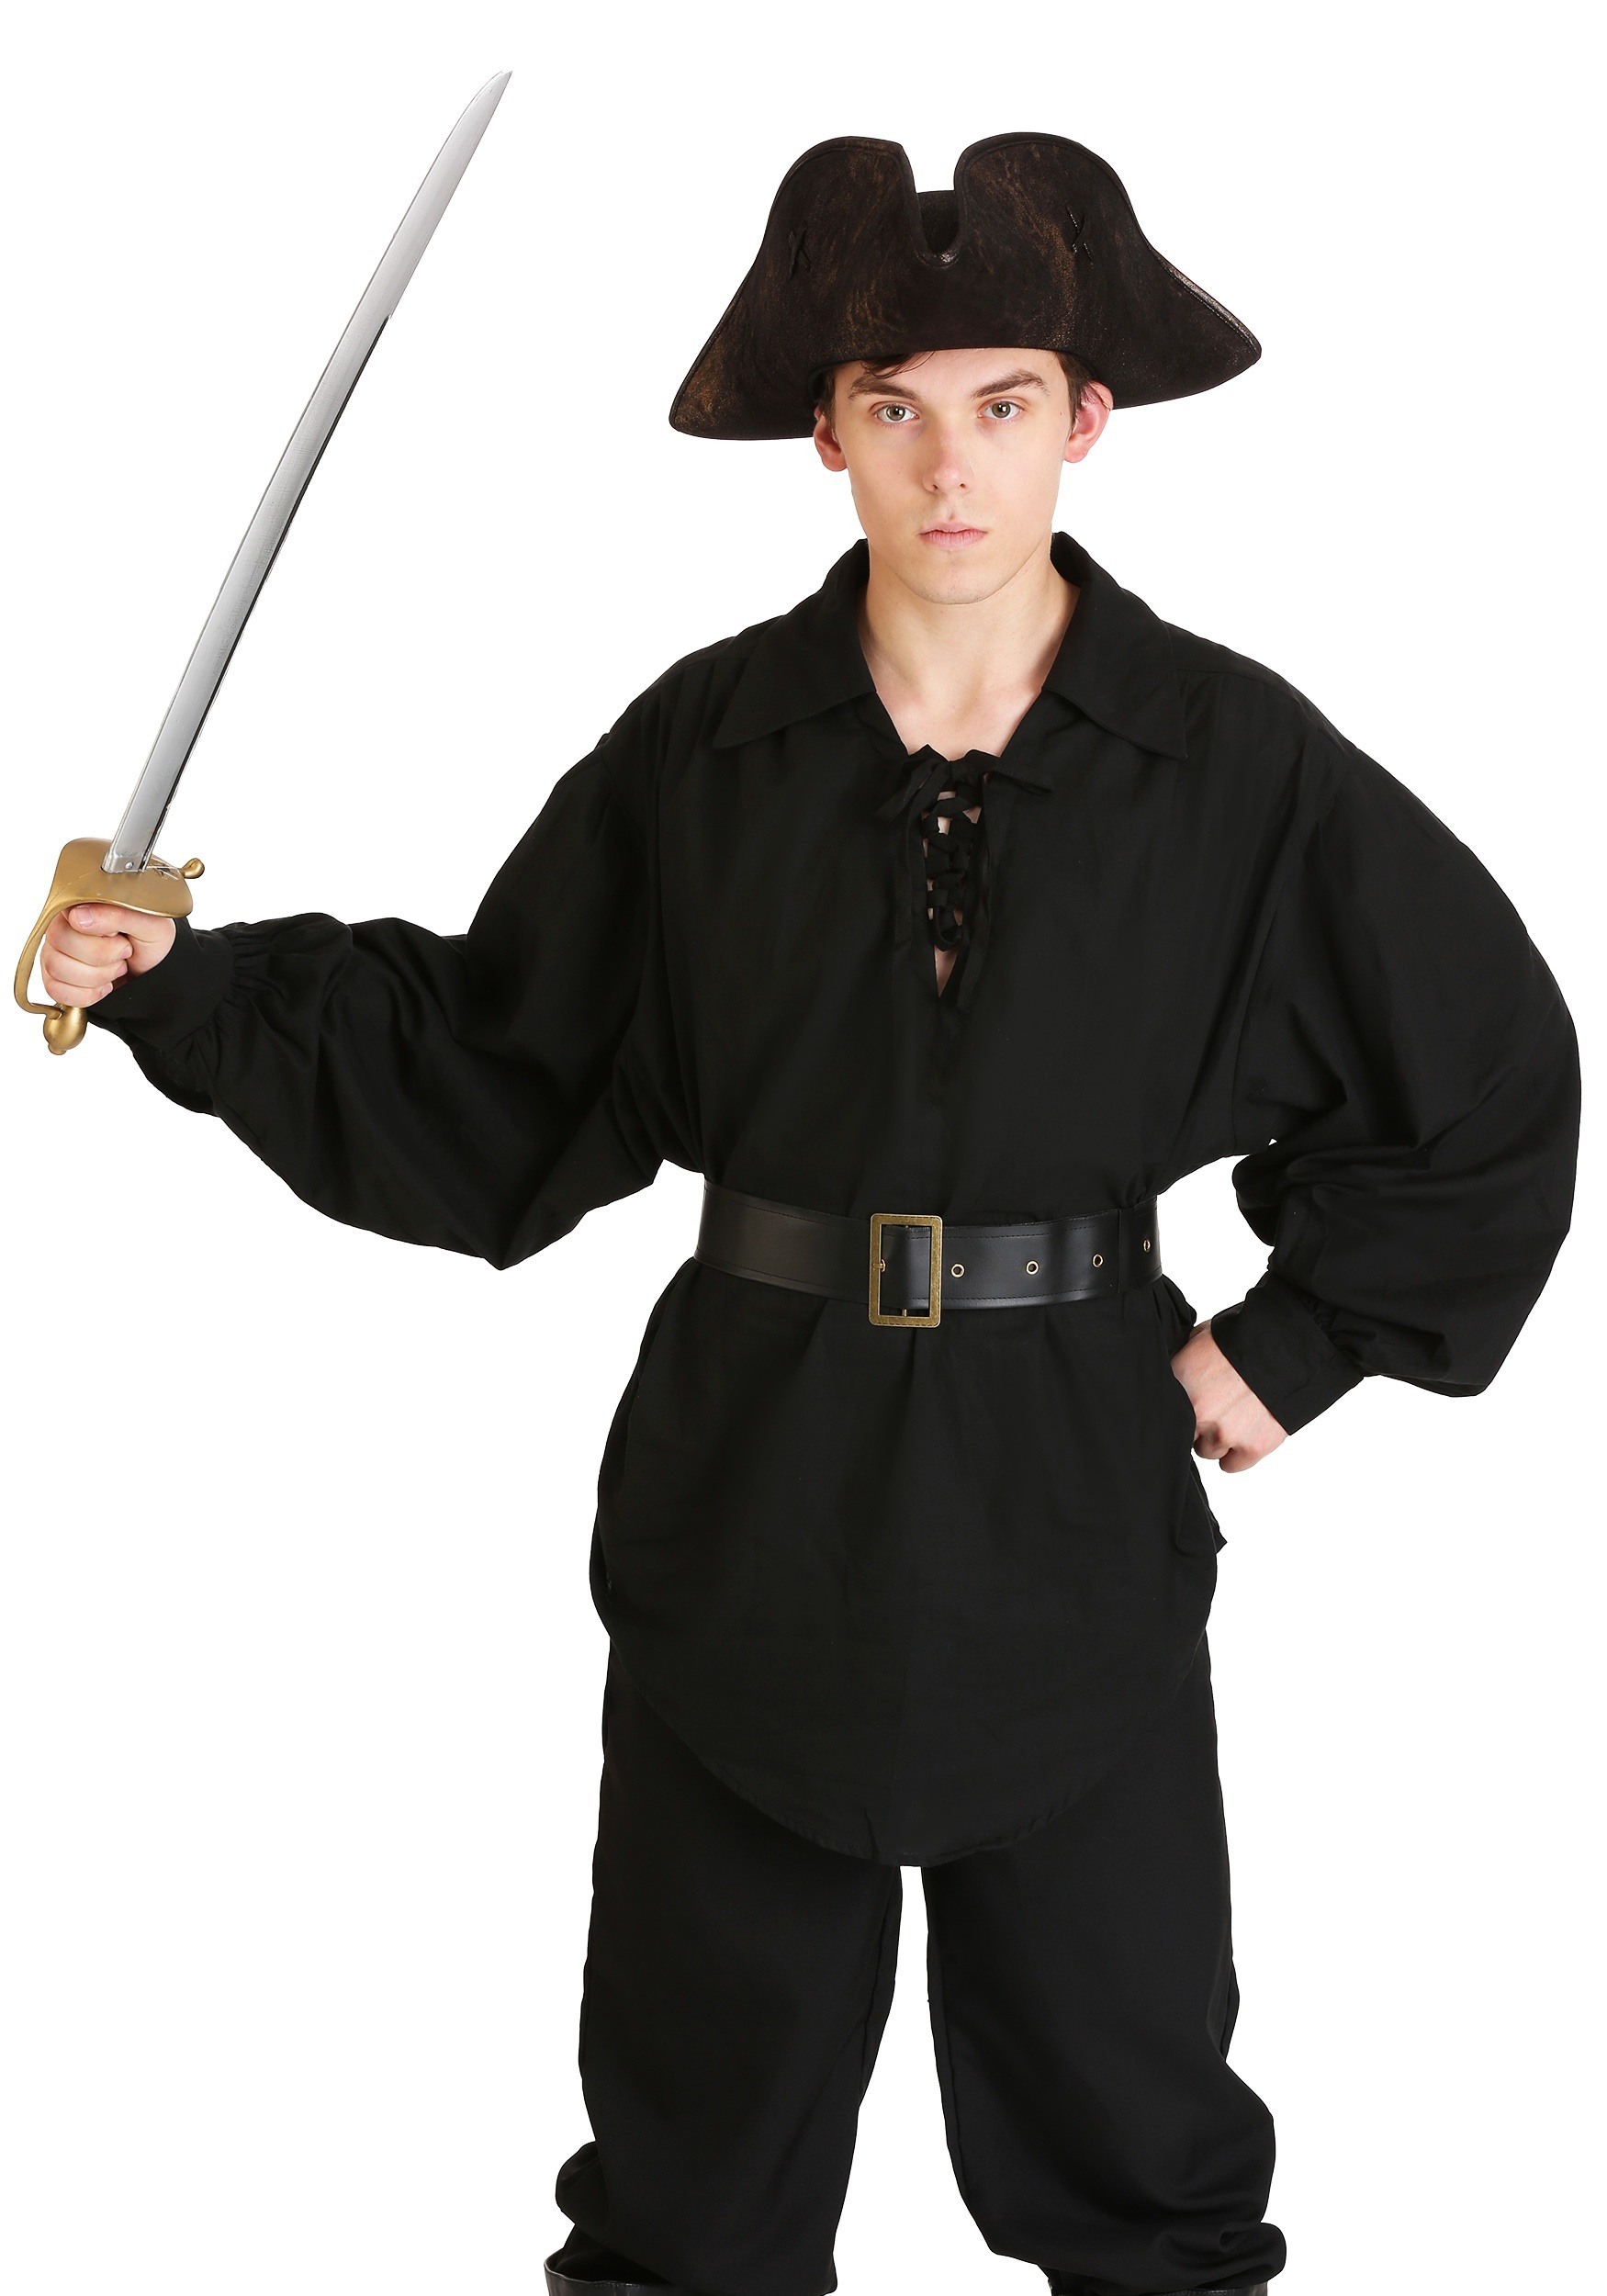 Pirate Buccaneer Renaissance Medieval Costume Shirt and belt Black